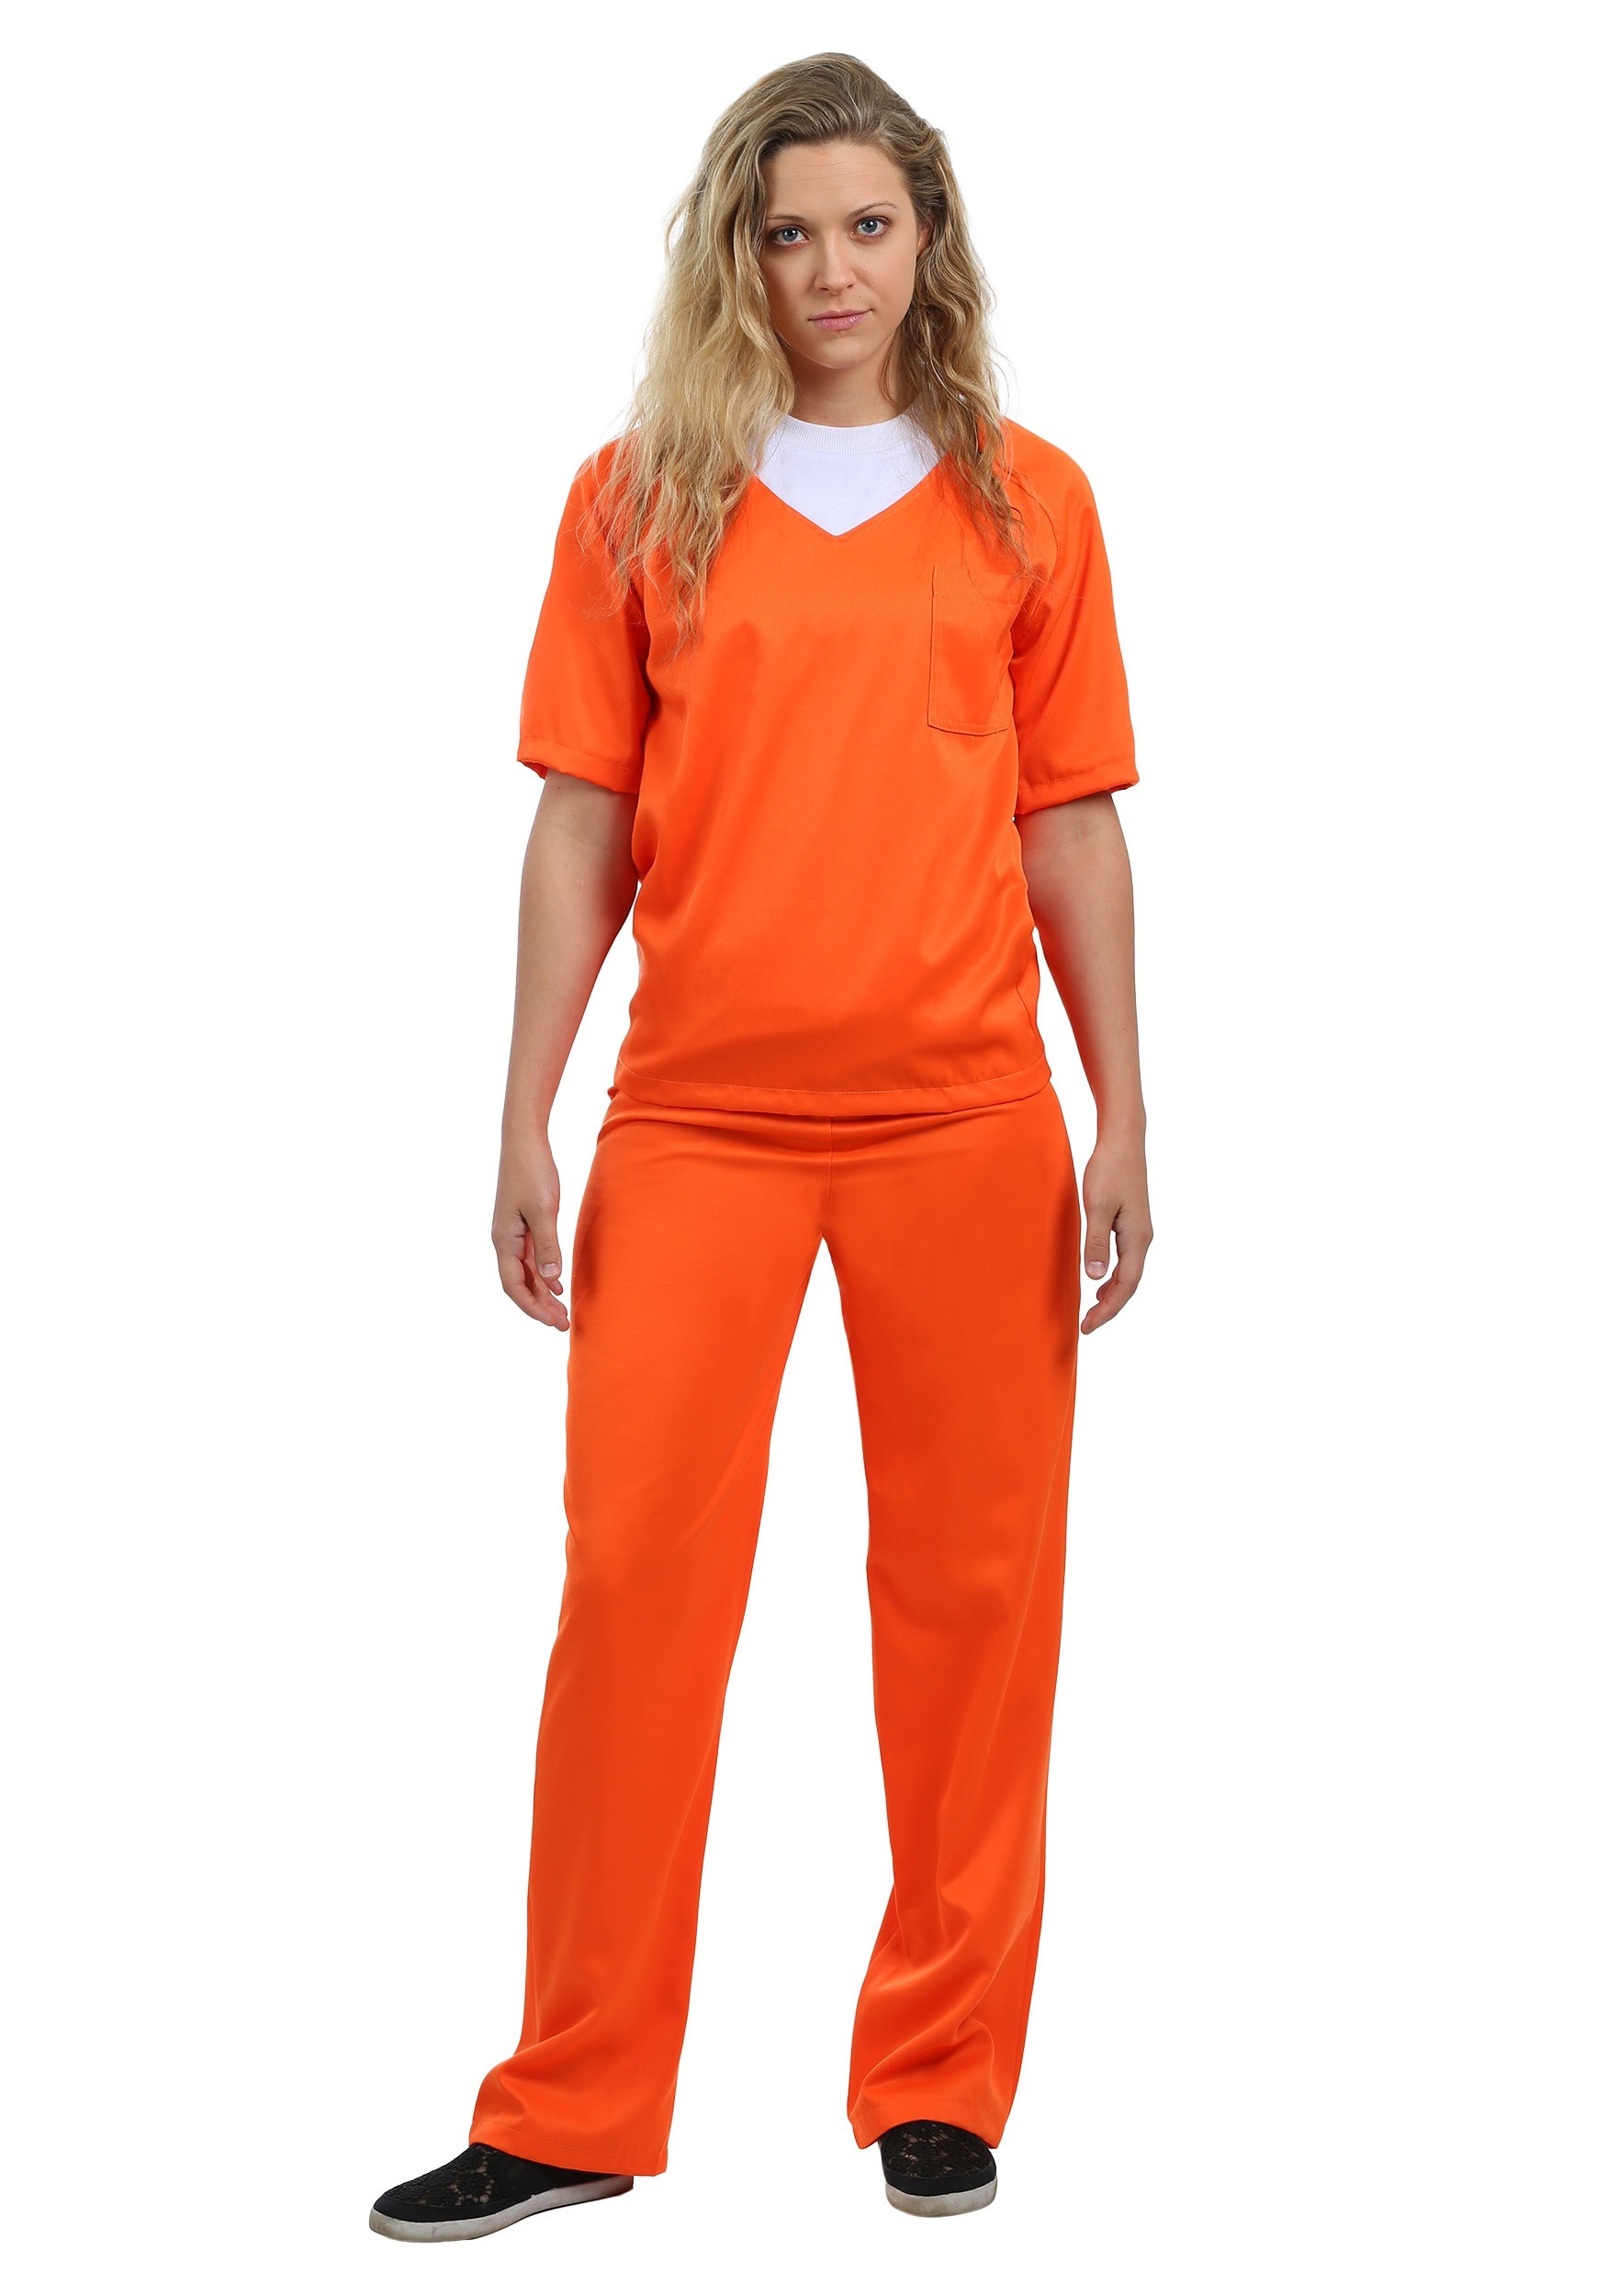 sc 1 st  Halloween Costumes & Womenu0027s Orange Prisoner Costume